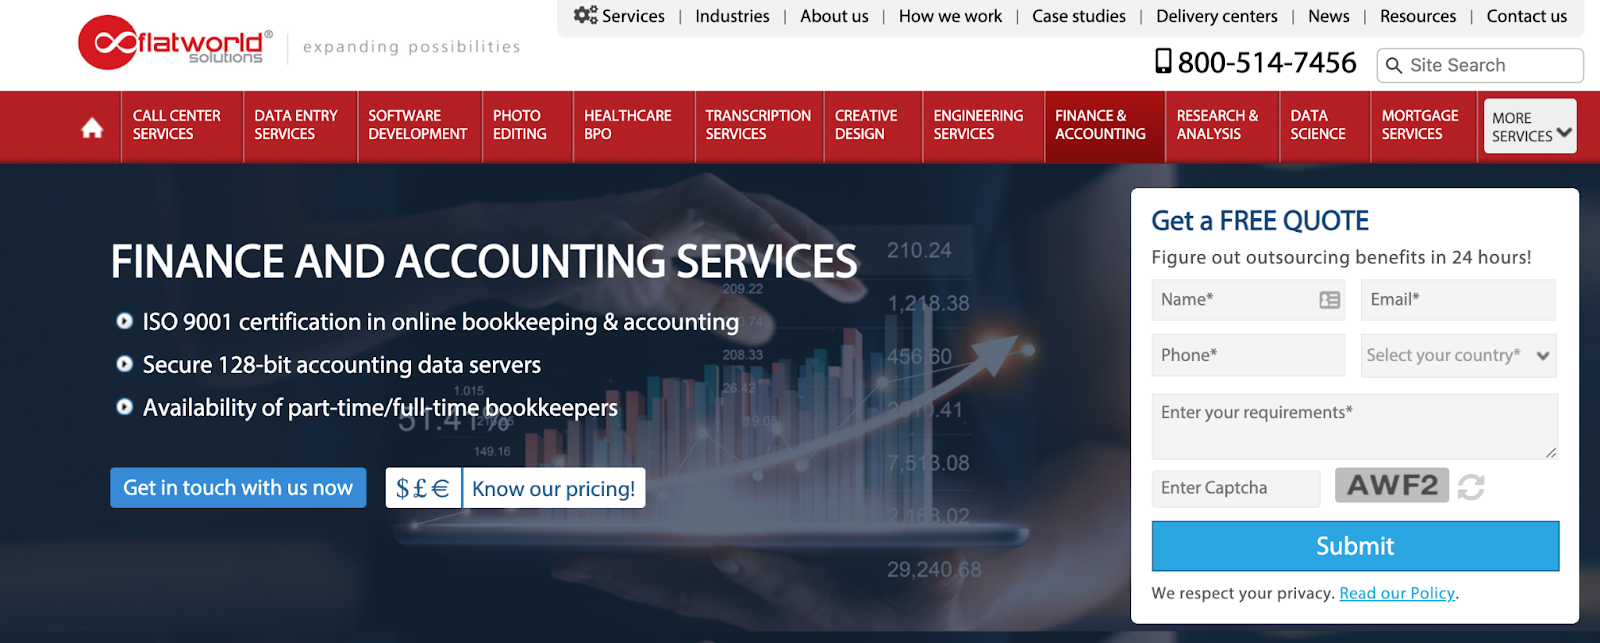 Flatworld Solutions website – payroll outsourcing company in India